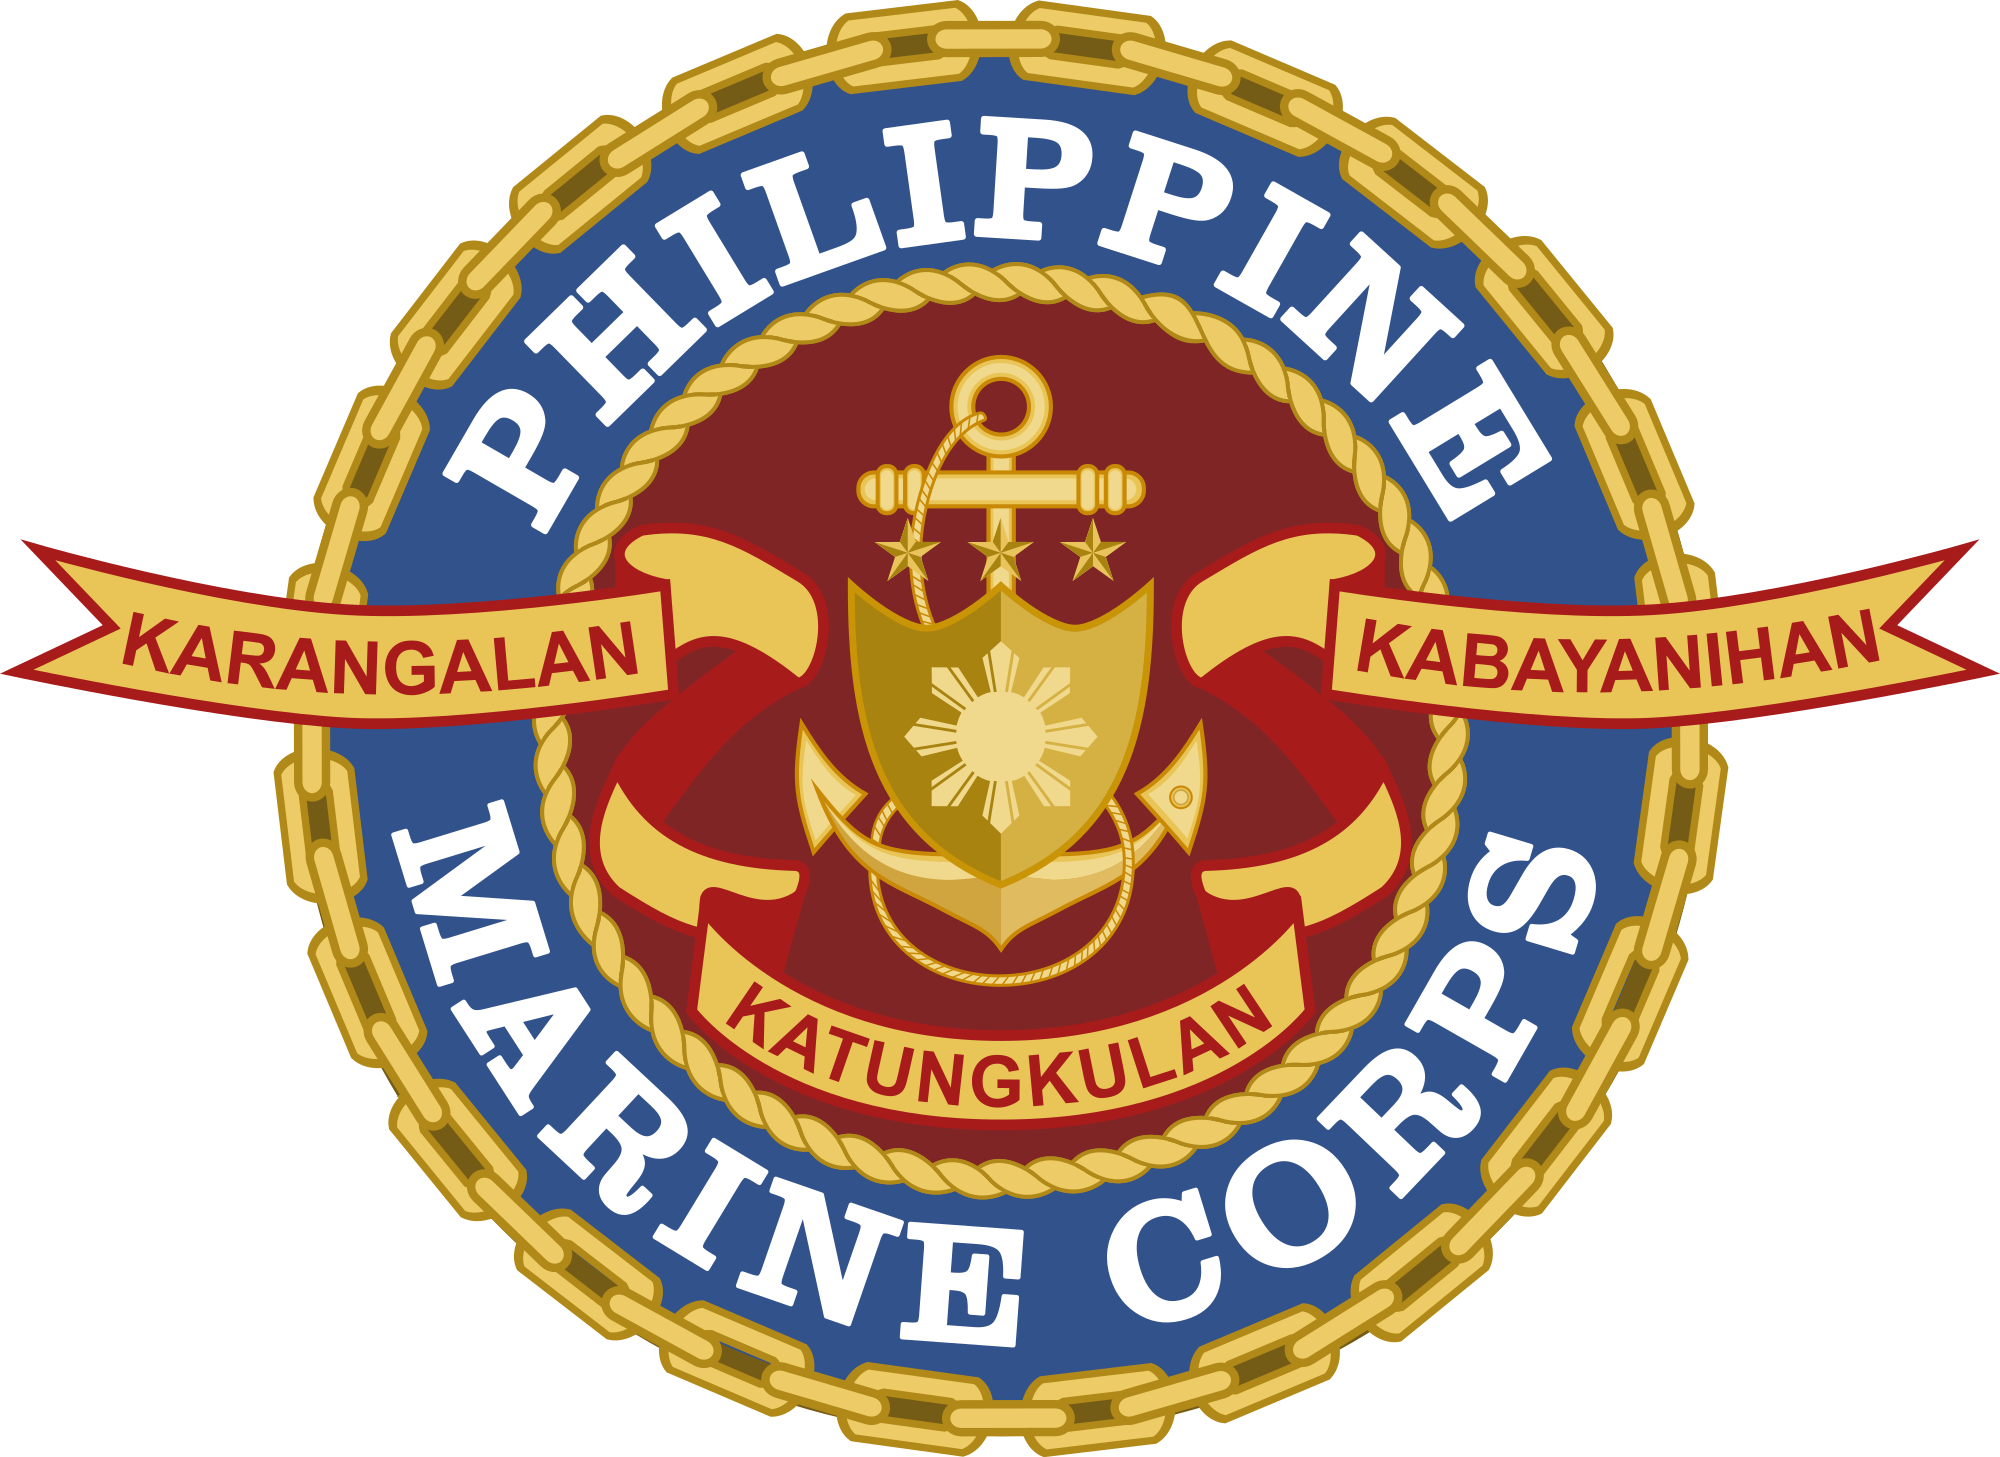 Marines seal png. File of the philippine